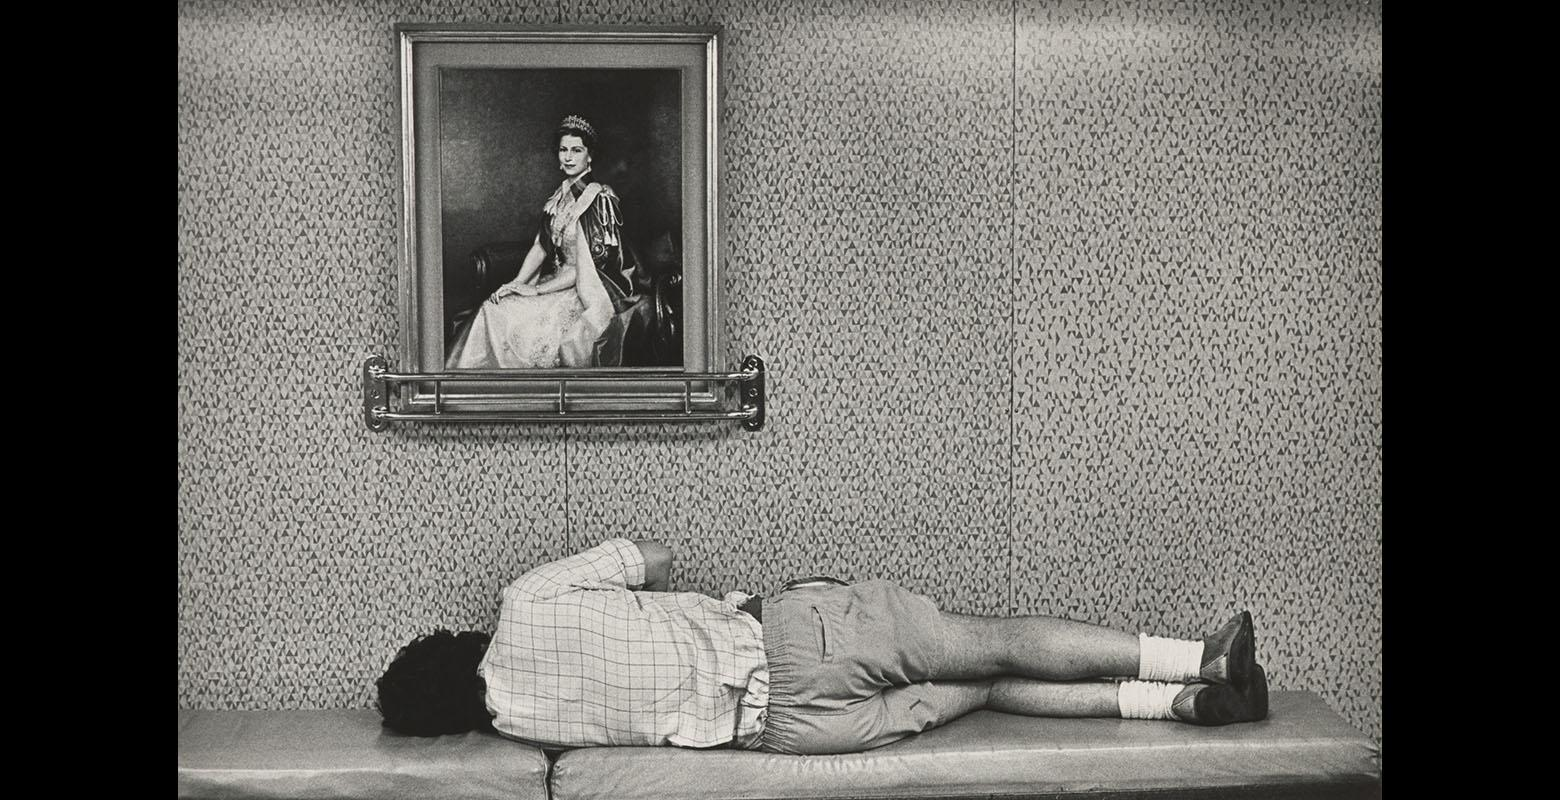 A man lies on a bench, his back to the camera. There is a portrait of Queen Elizabeth the second on the wall above him